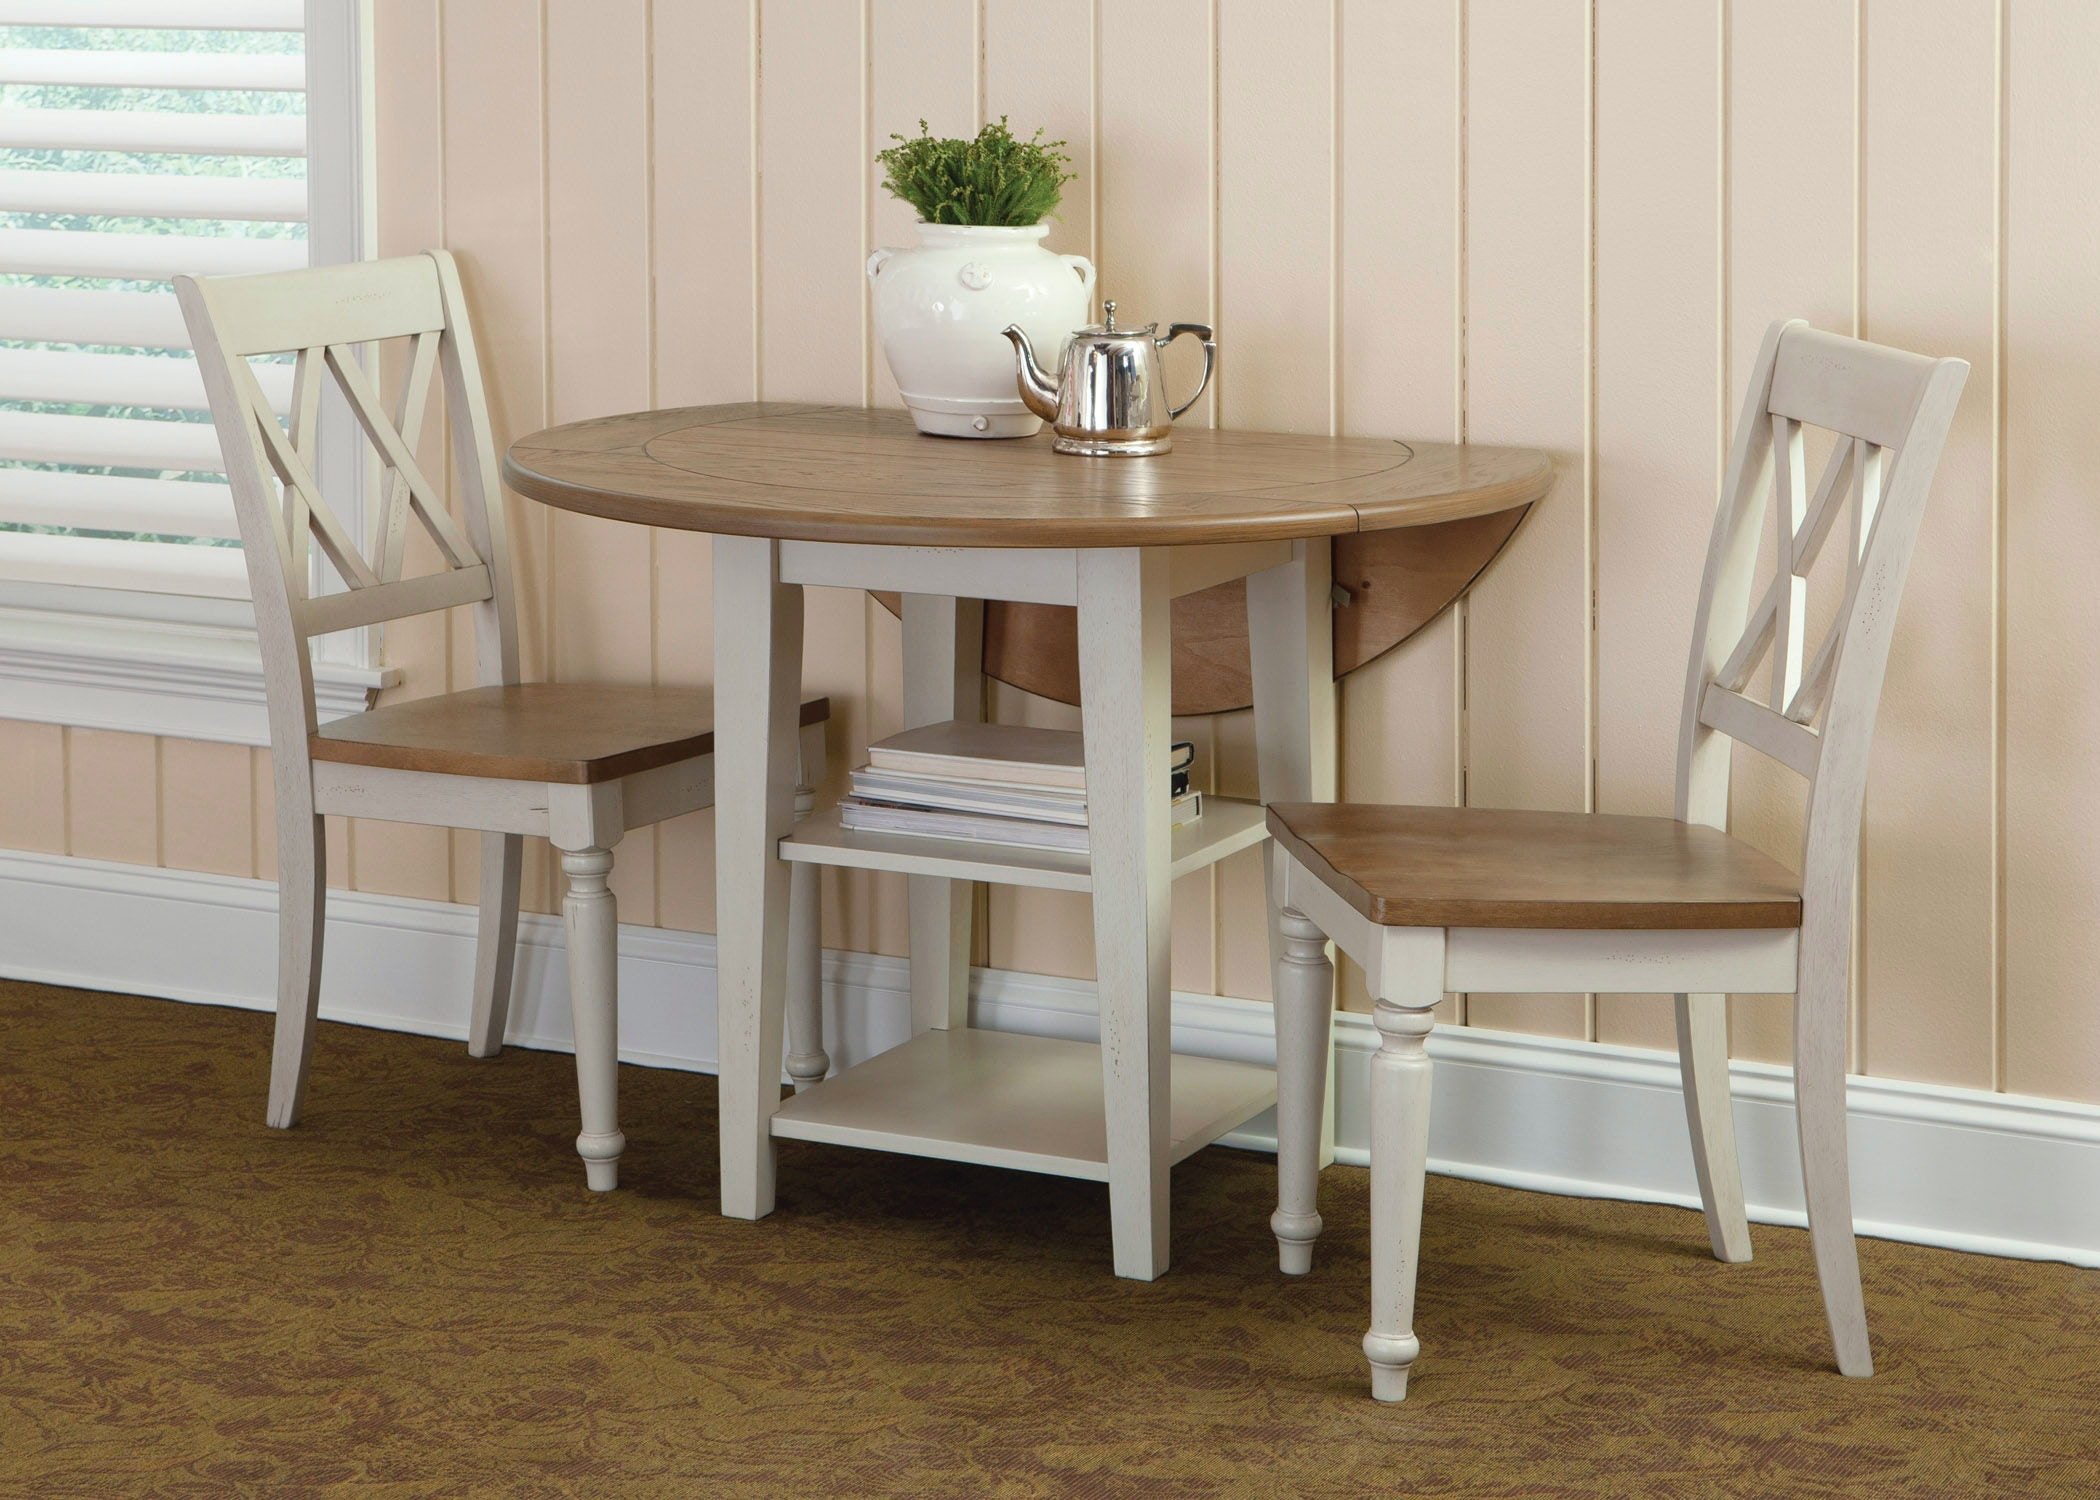 al s chairs and tables chair cover rental party liberty furniture dining room opt 3 piece drop leaf table